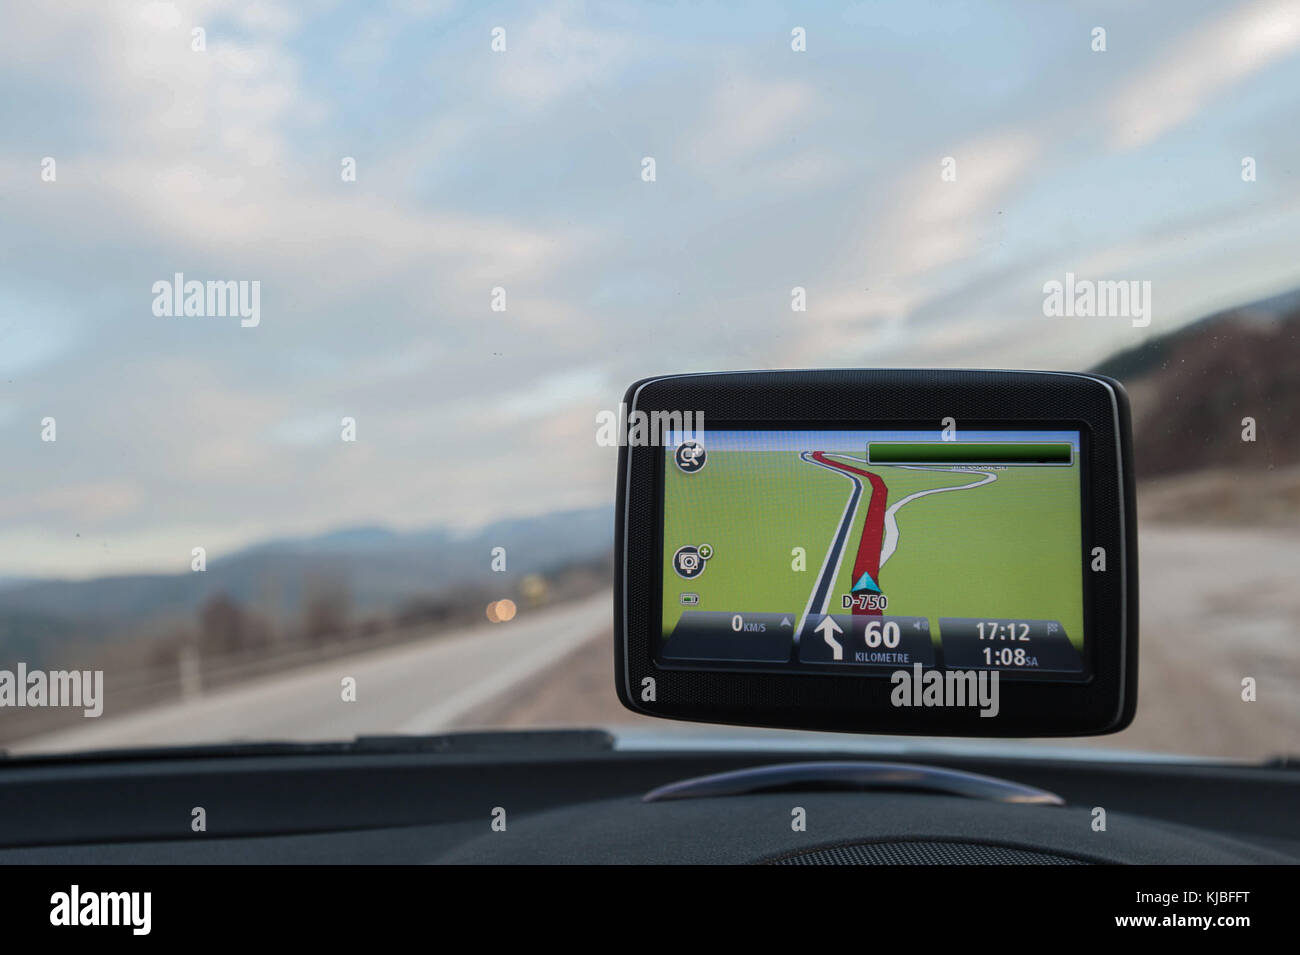 Display of a car navigation system while on the road Stock Photo